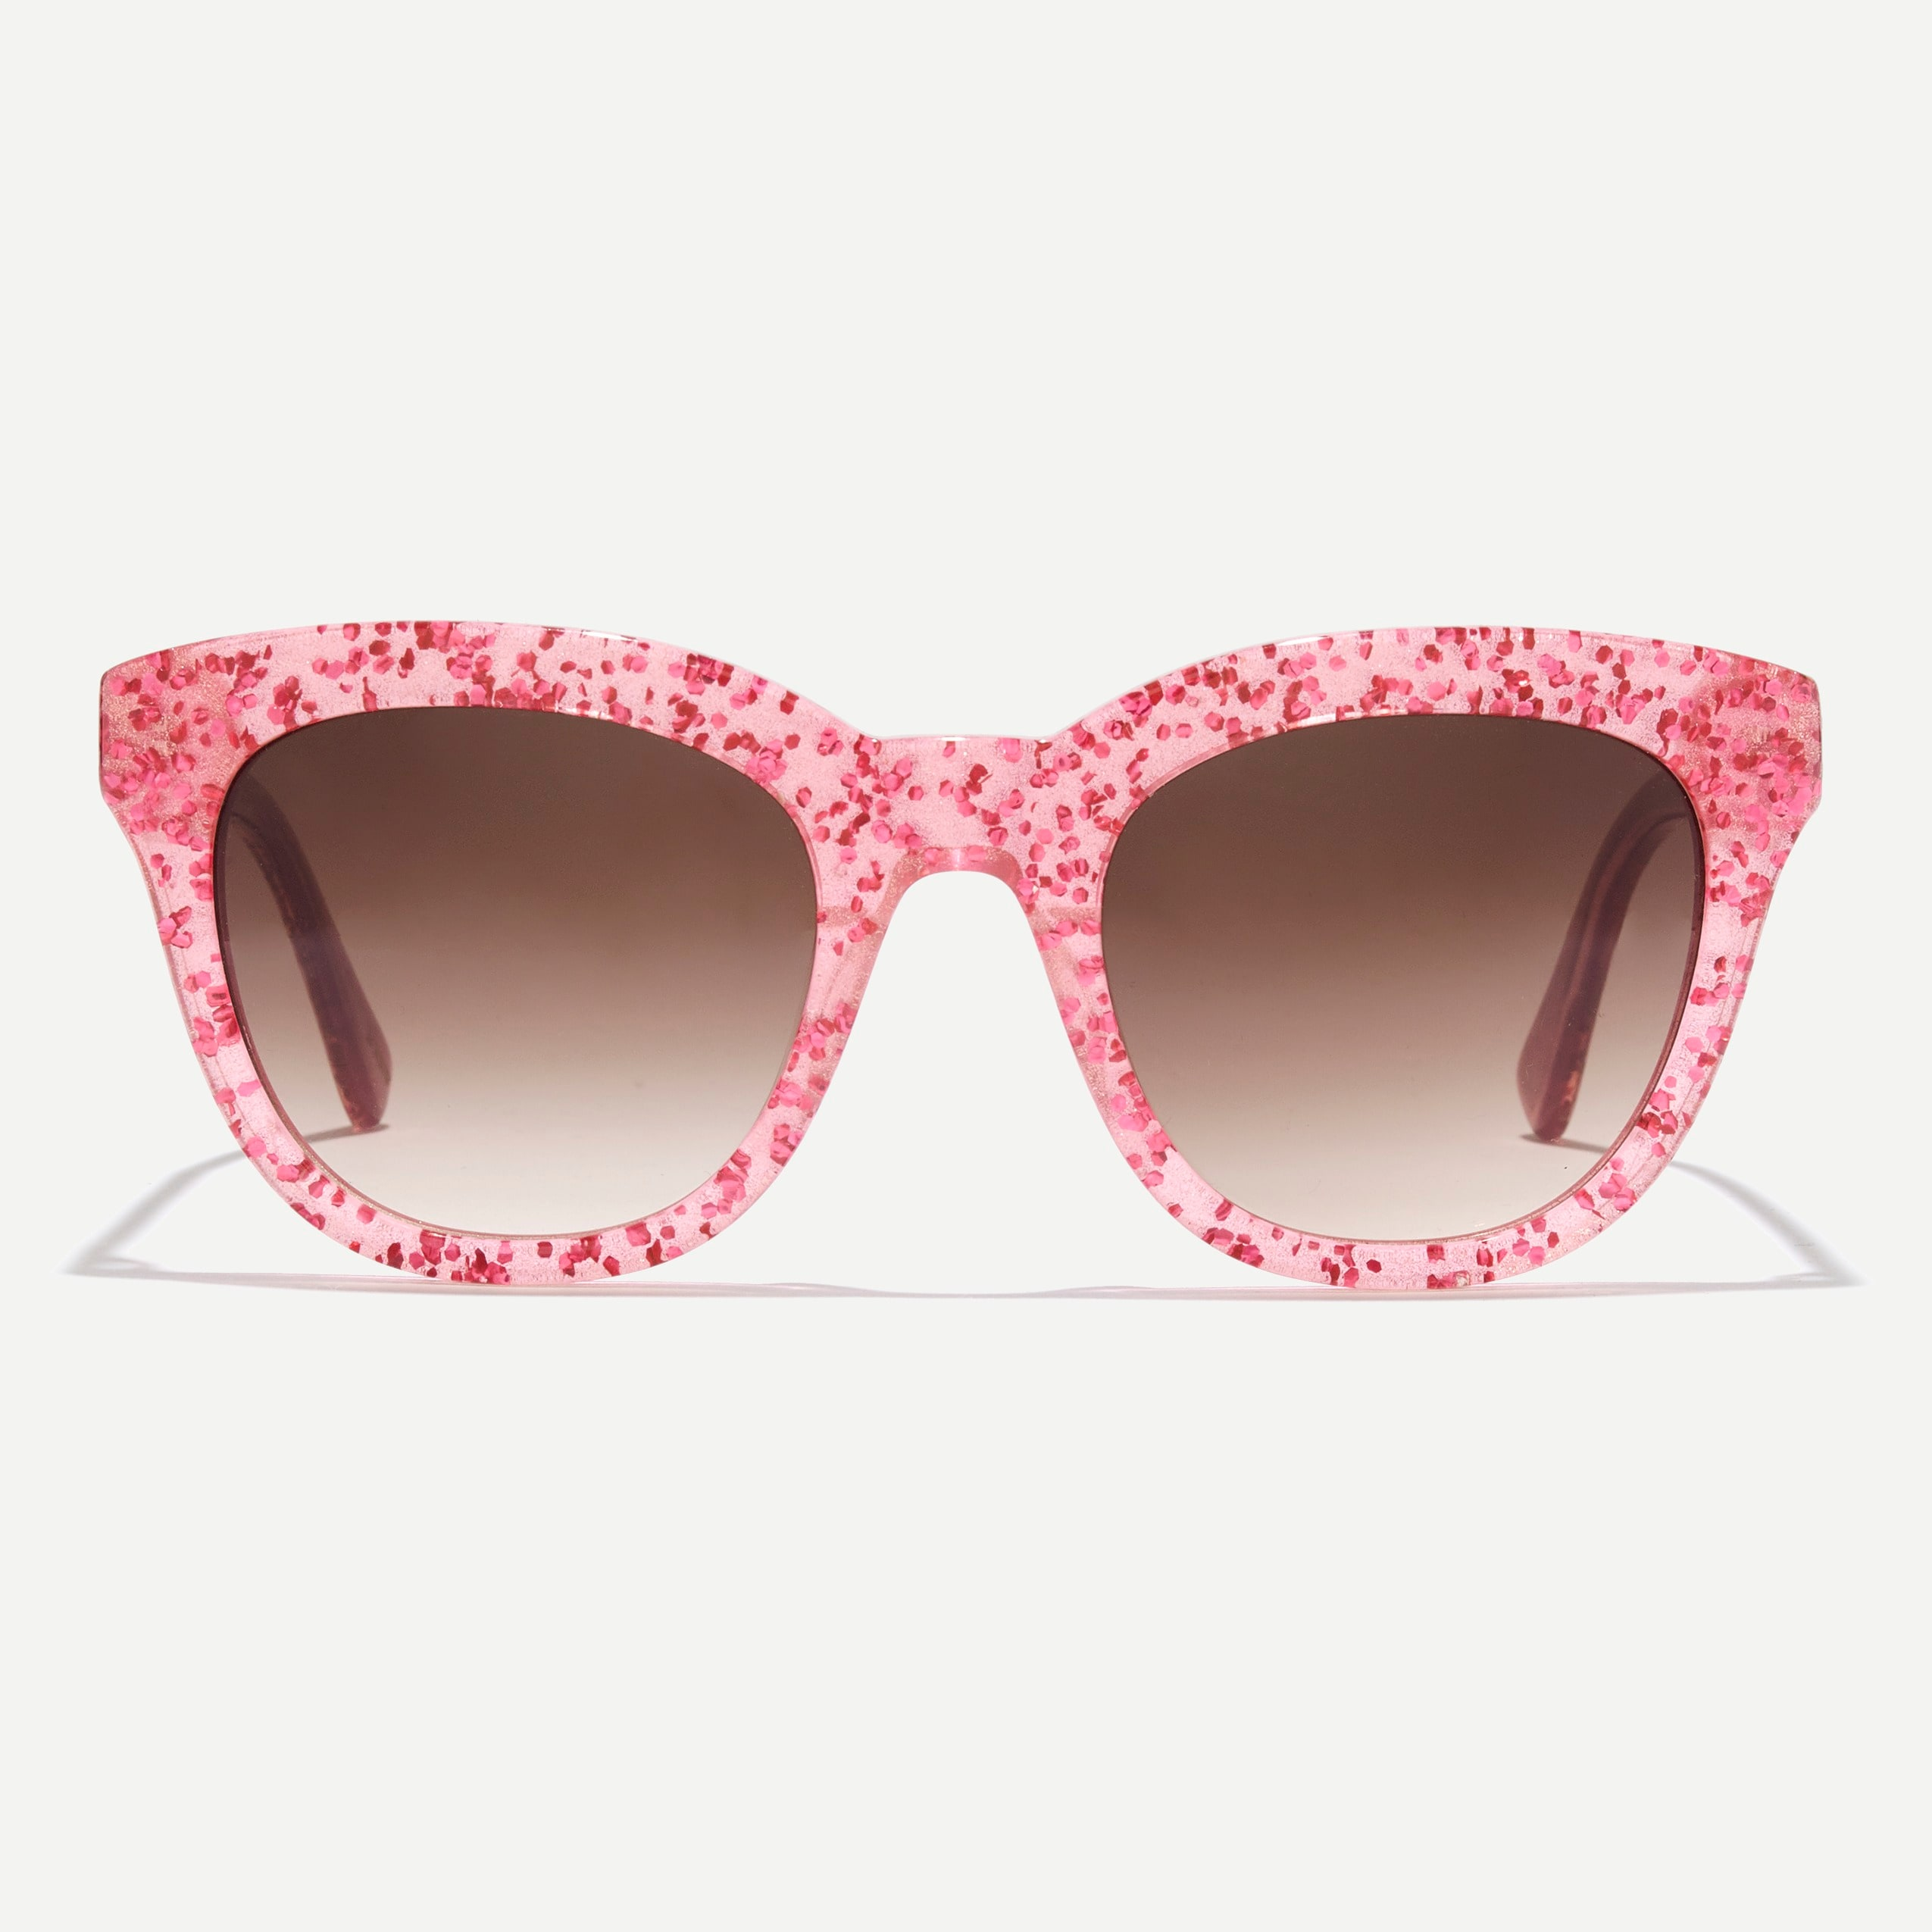 Image 1 for Cabana oversized sunglasses